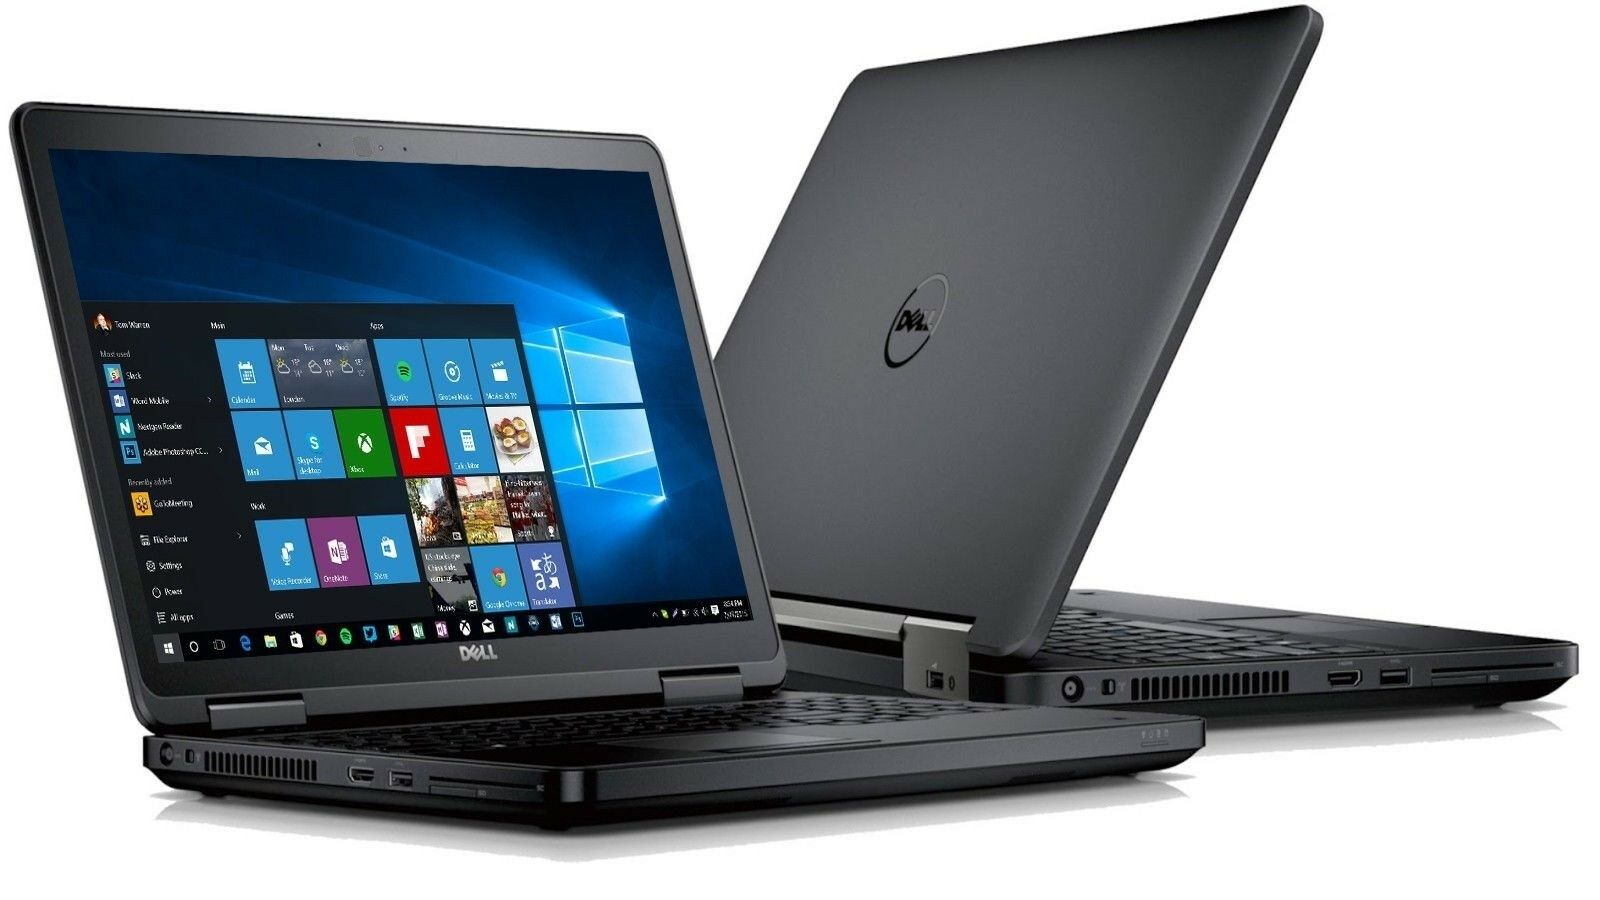 "Dell Latitude E5440 14"" Laptop - Intel i3-4010U✔4GB RAM✔320GB HDD✔Wi-Fi✔DVD-RW"